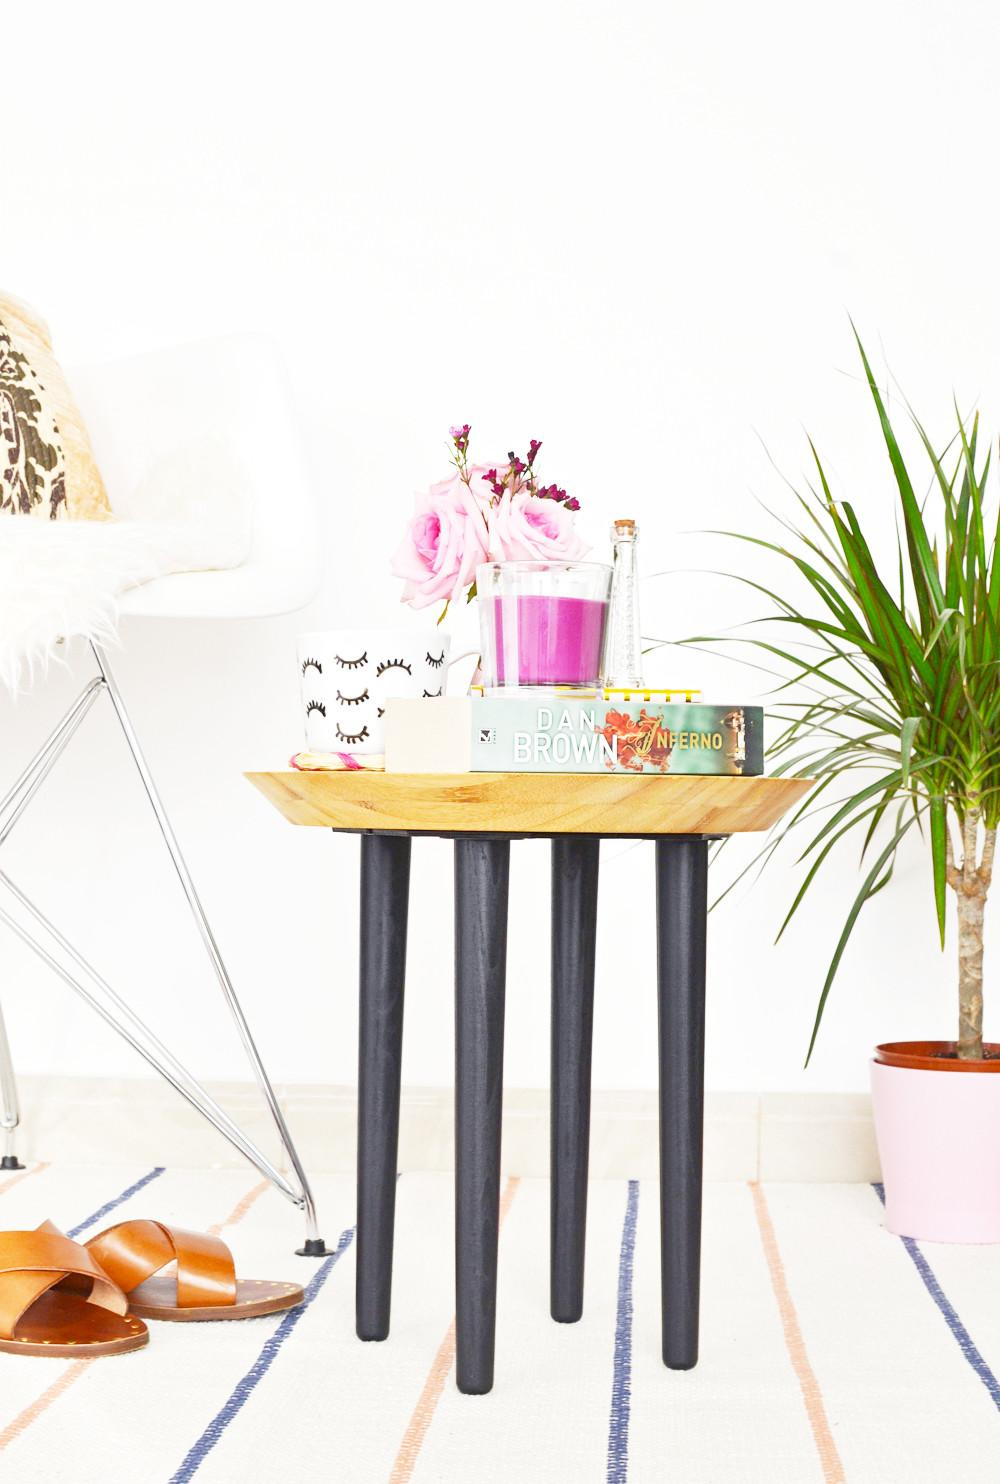 Hack Diy Chopping Board Side Table Enthralling